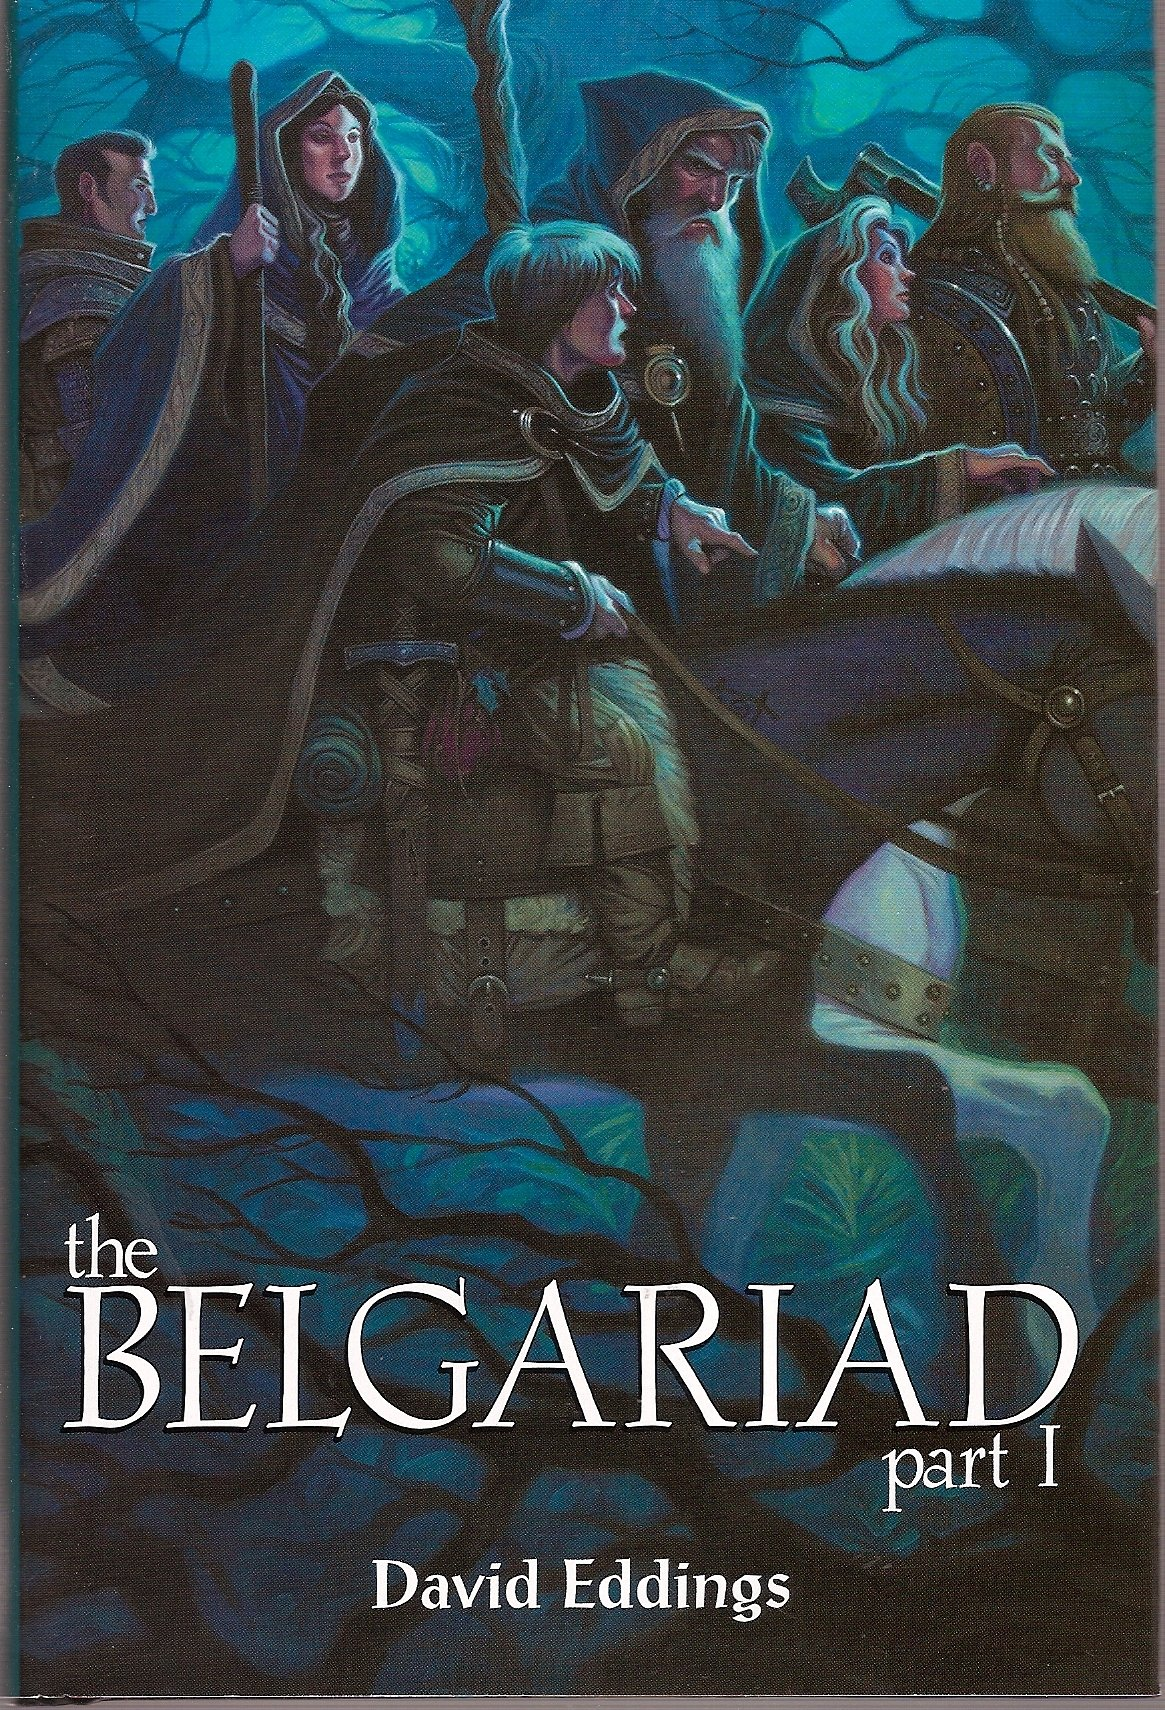 Read The Belgariad Vol 1 Pawn Of Prophecy Queen Of Sorcery Magicians Gambit The Belgariad 1 3 By David Eddings